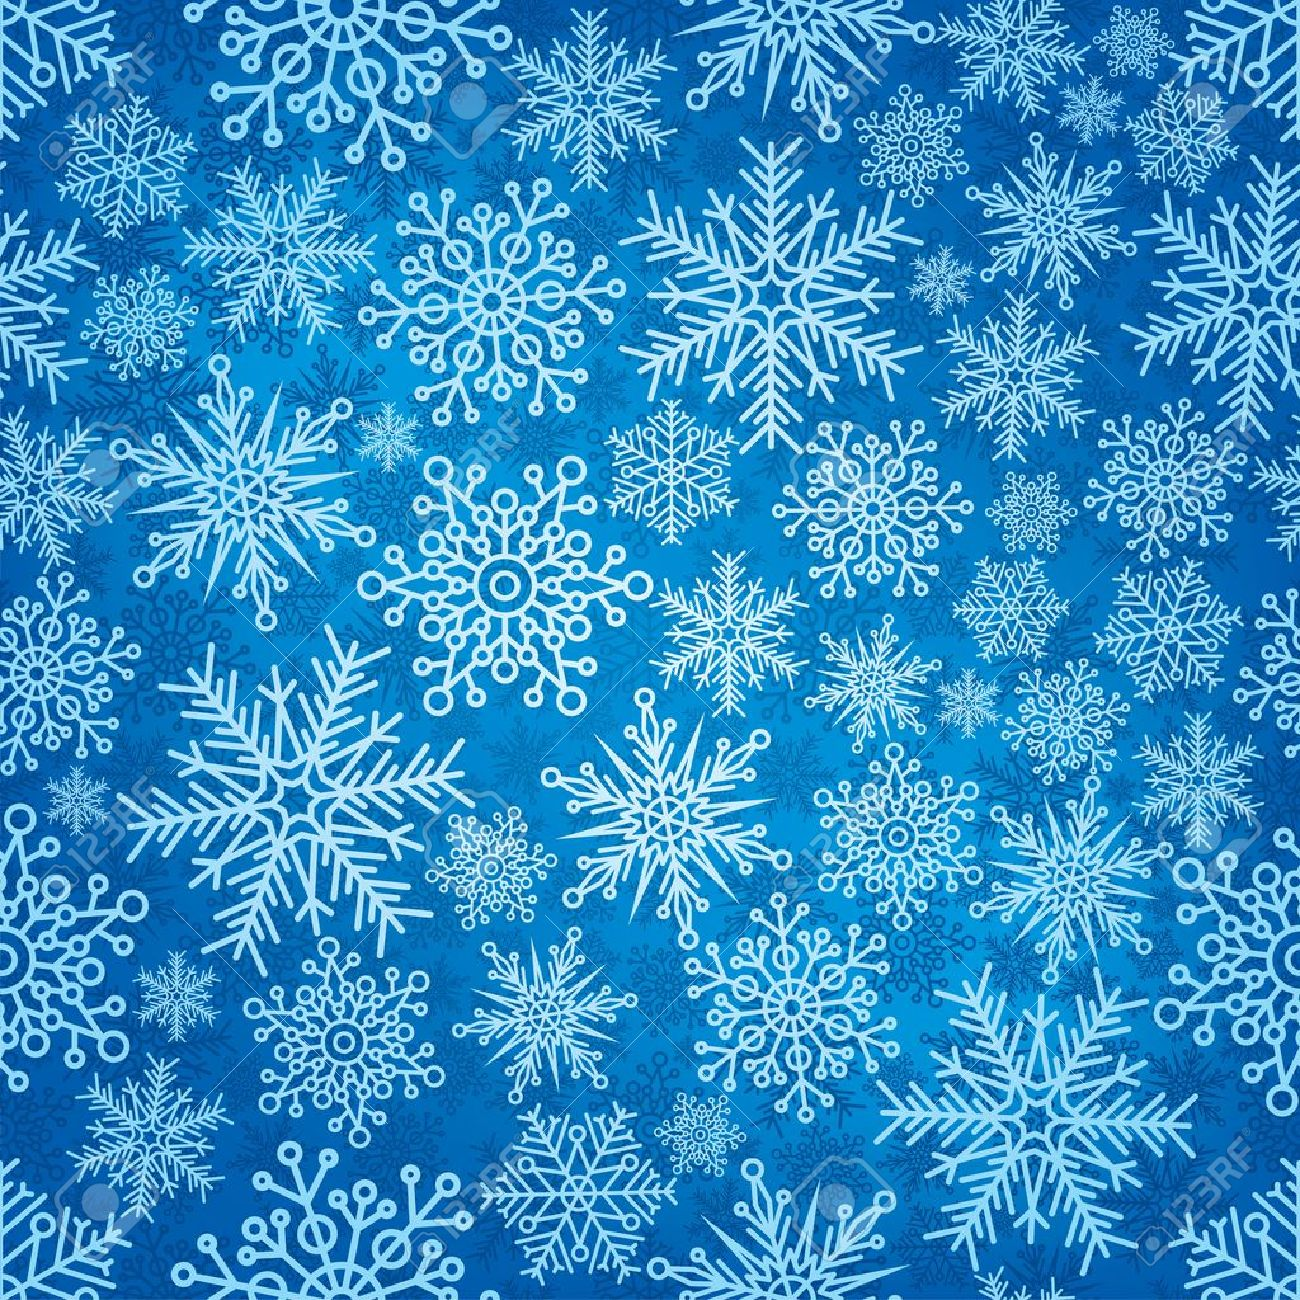 Seamless pattern with New Year's snowflakes. Stock Vector - 16520750